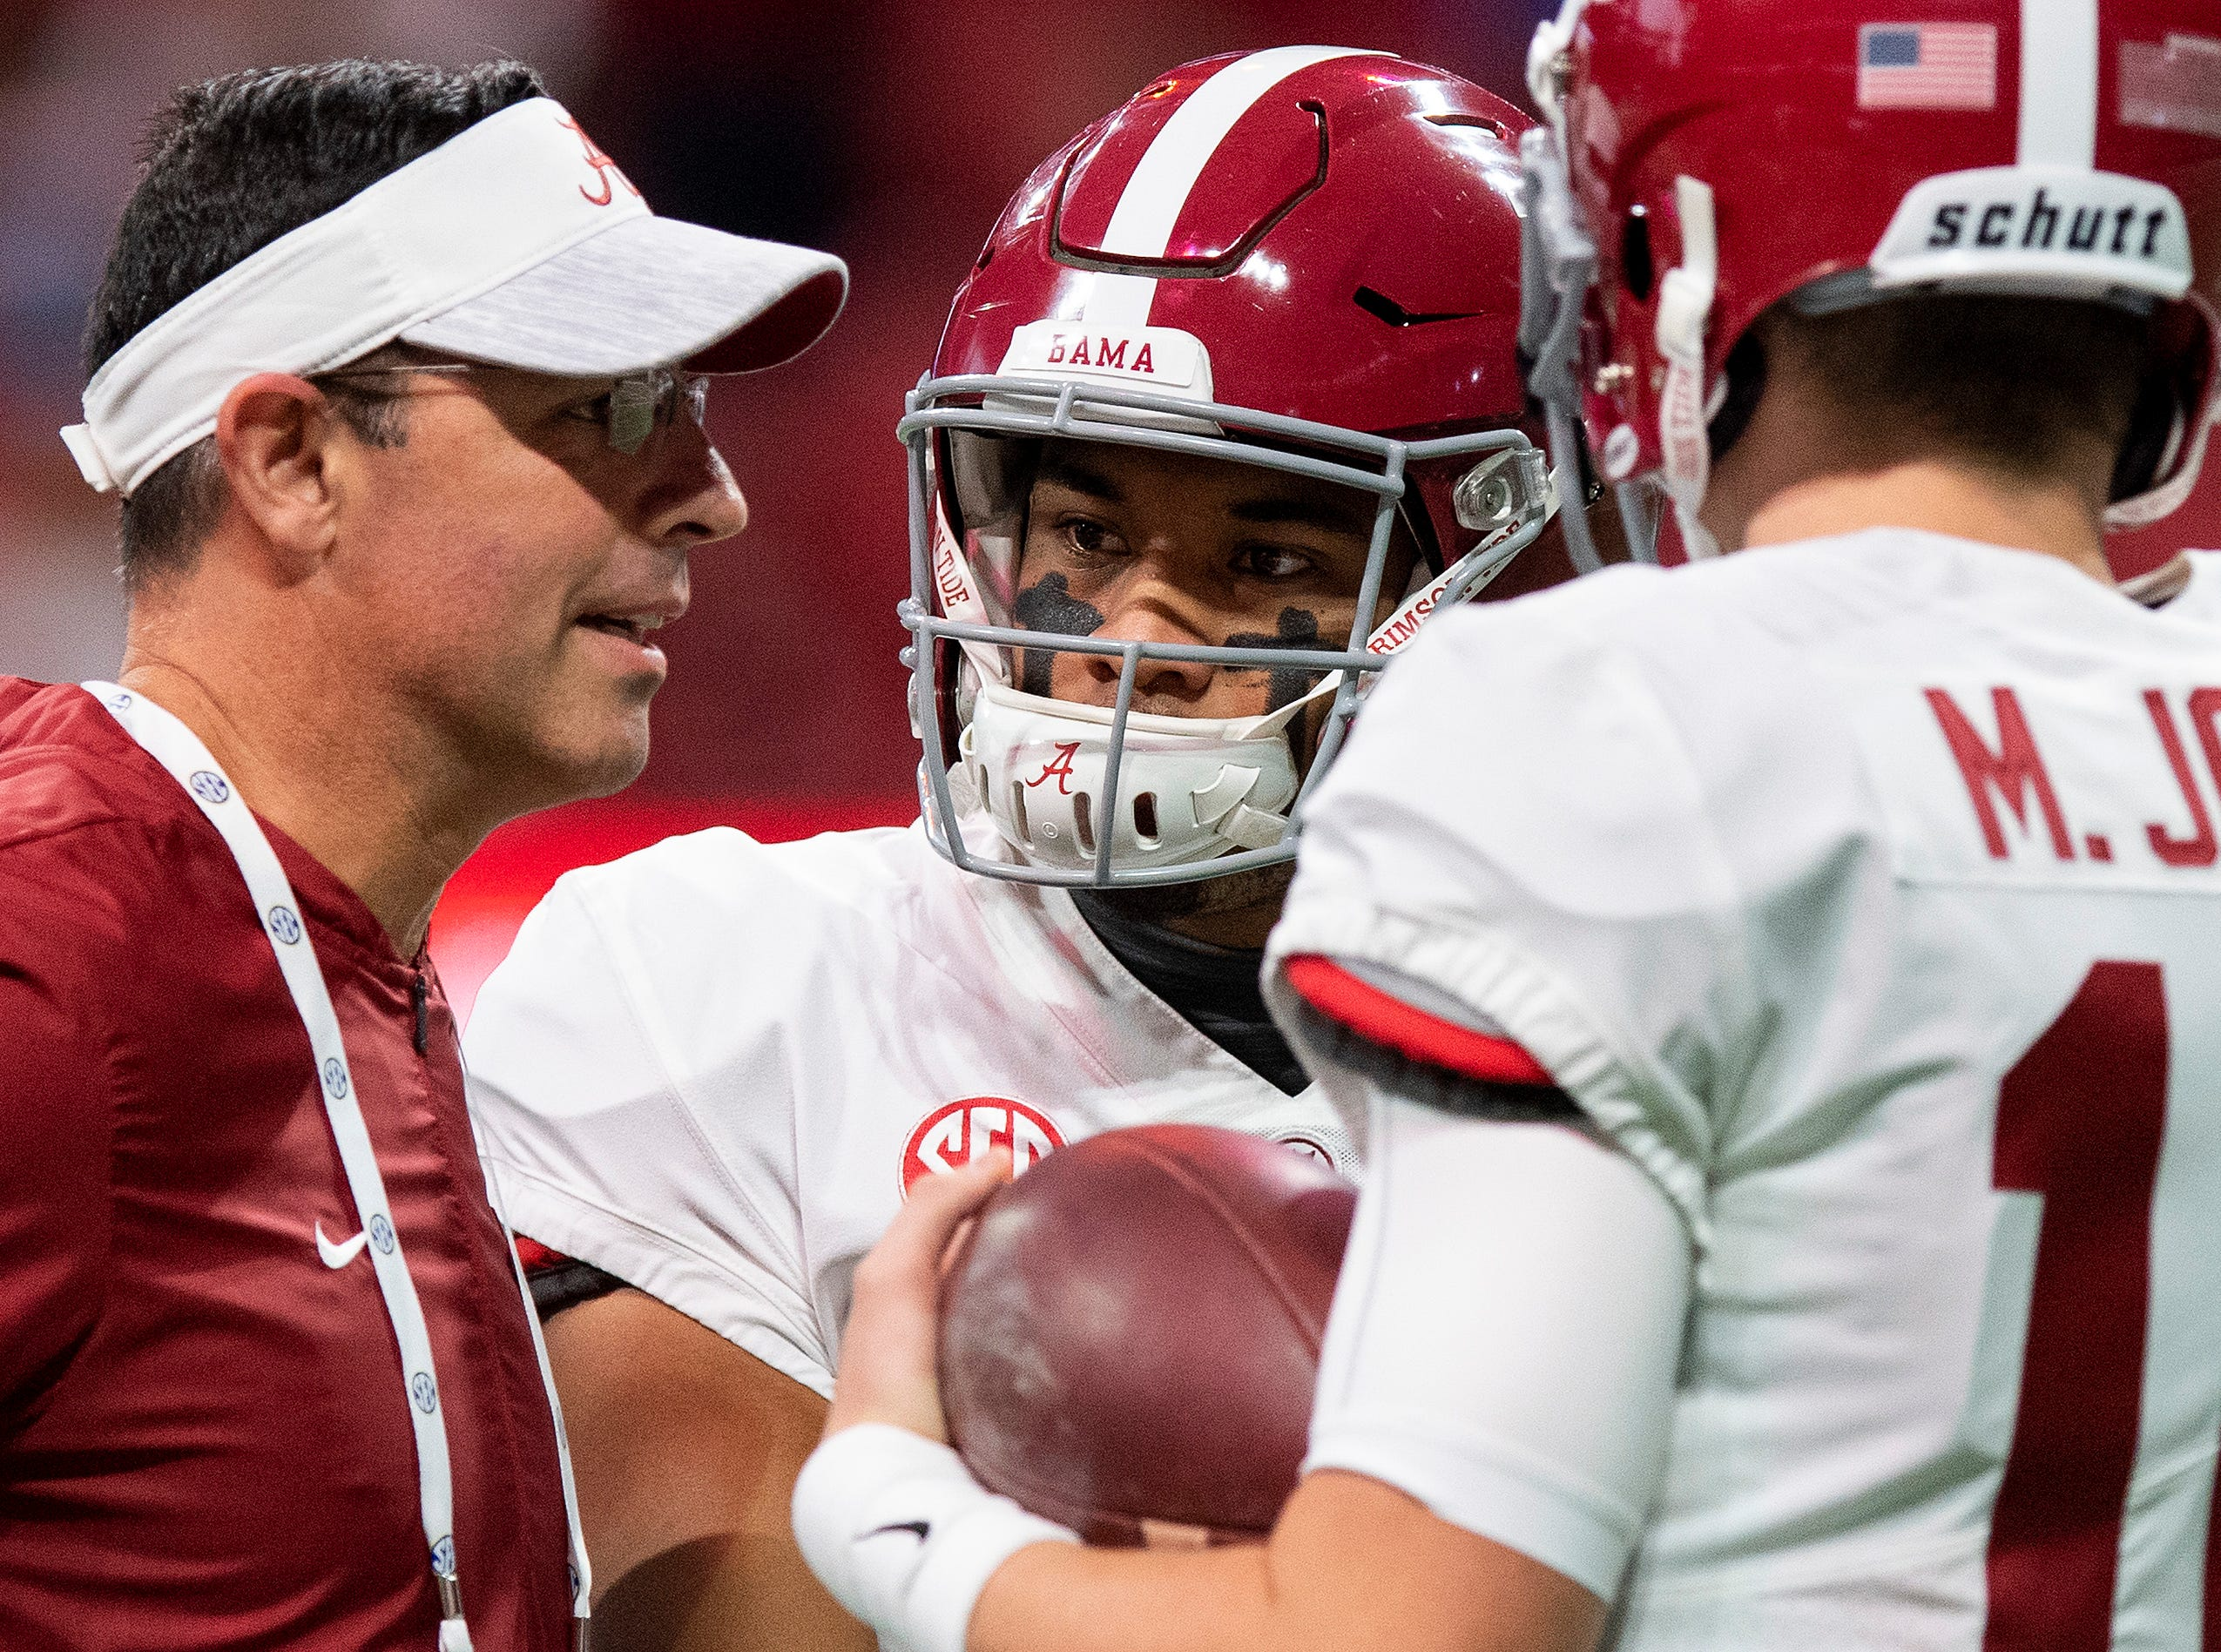 Alabama quarterbacks coach Dan Enos talks with quarterbacks Tua Tagovailoa (13) and Mac Jones (10) during warmups before the SEC Championship Game at Mercedes Benz Stadium in Atlanta, Ga., on Saturday December 1, 2018.